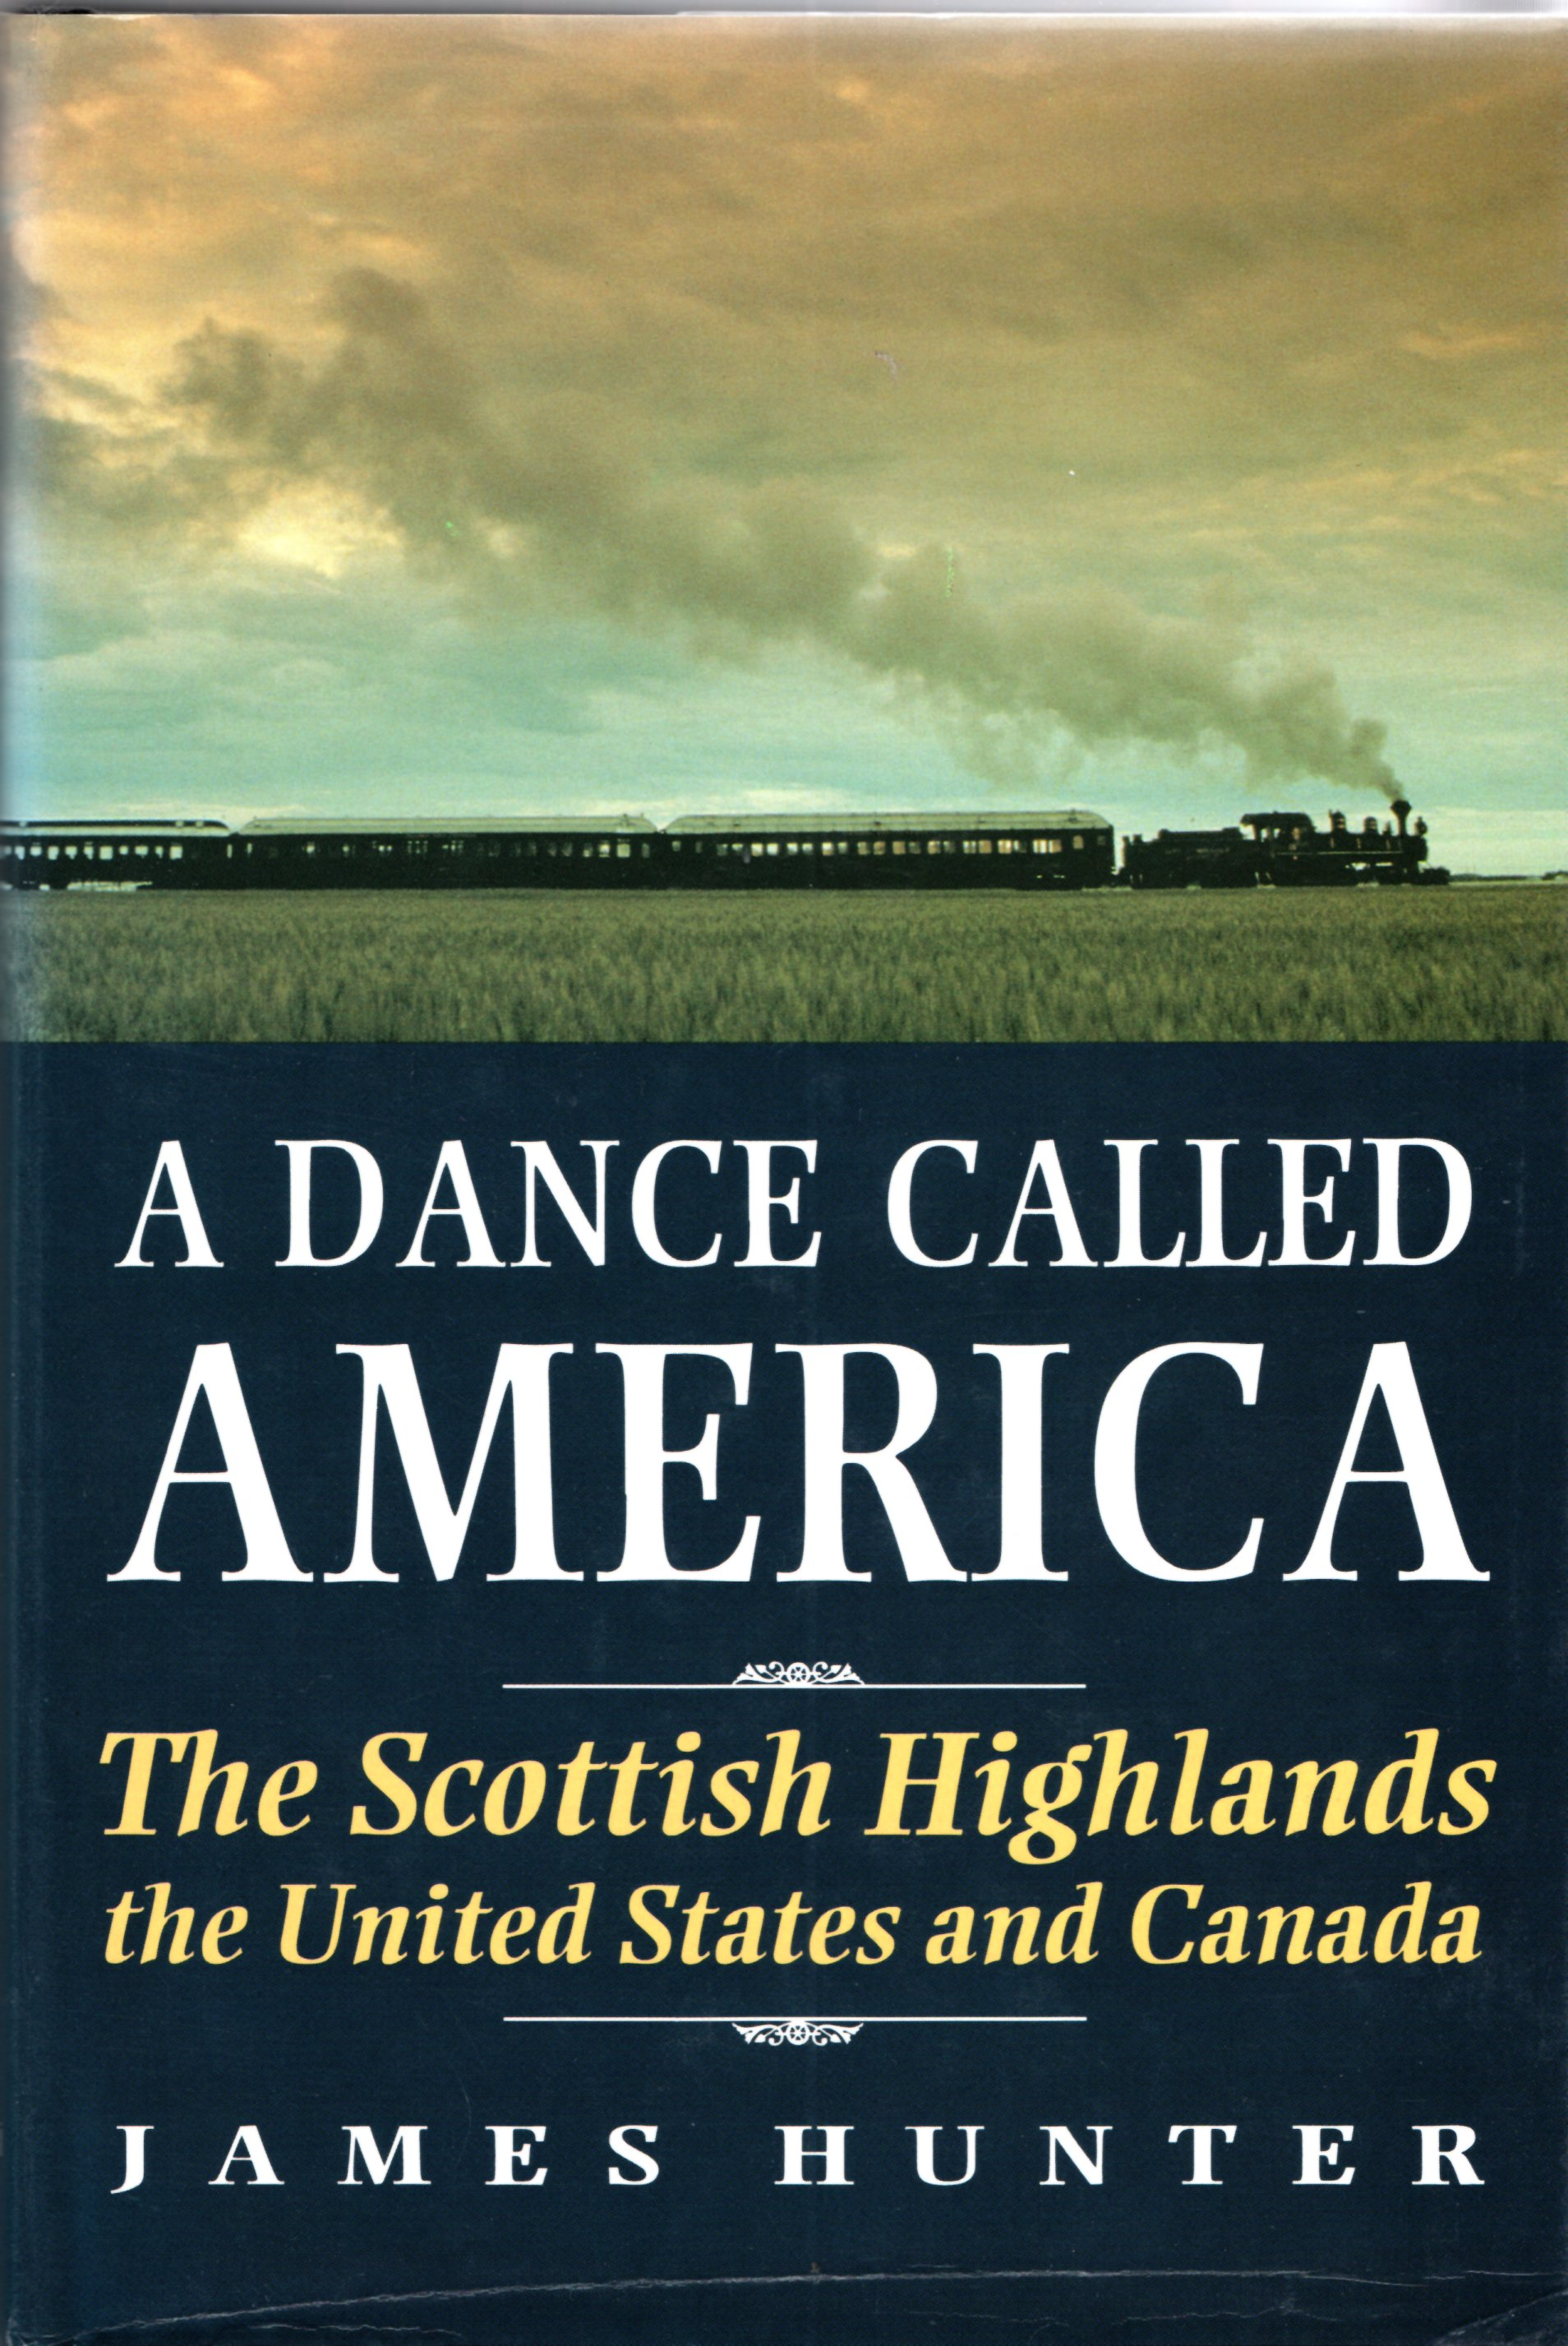 Image for A Dance Called America: The Scottish Highlands, the United States and Canada